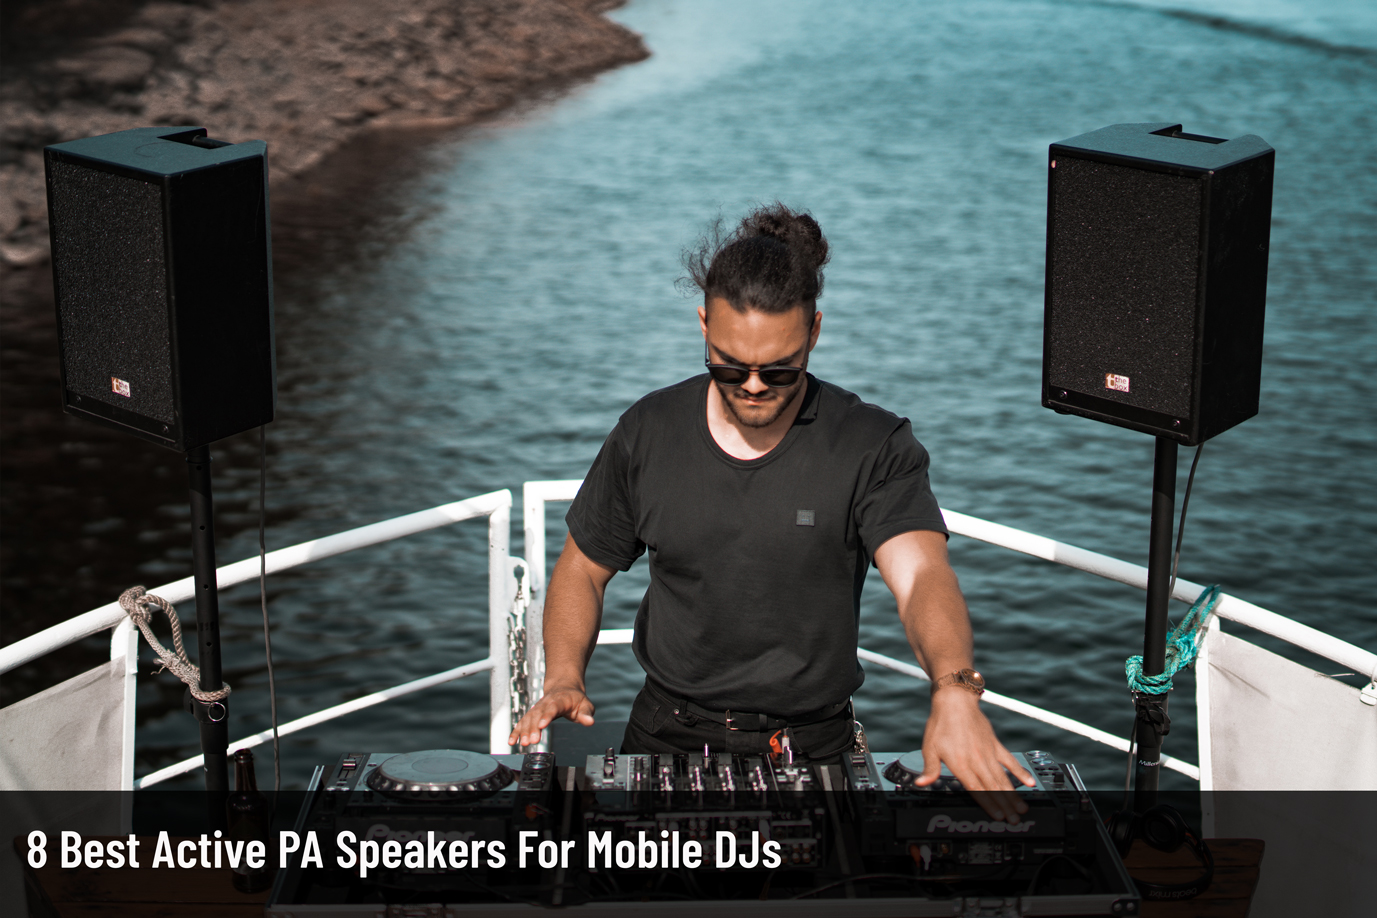 8 Best Active PA Speakers For Mobile DJs